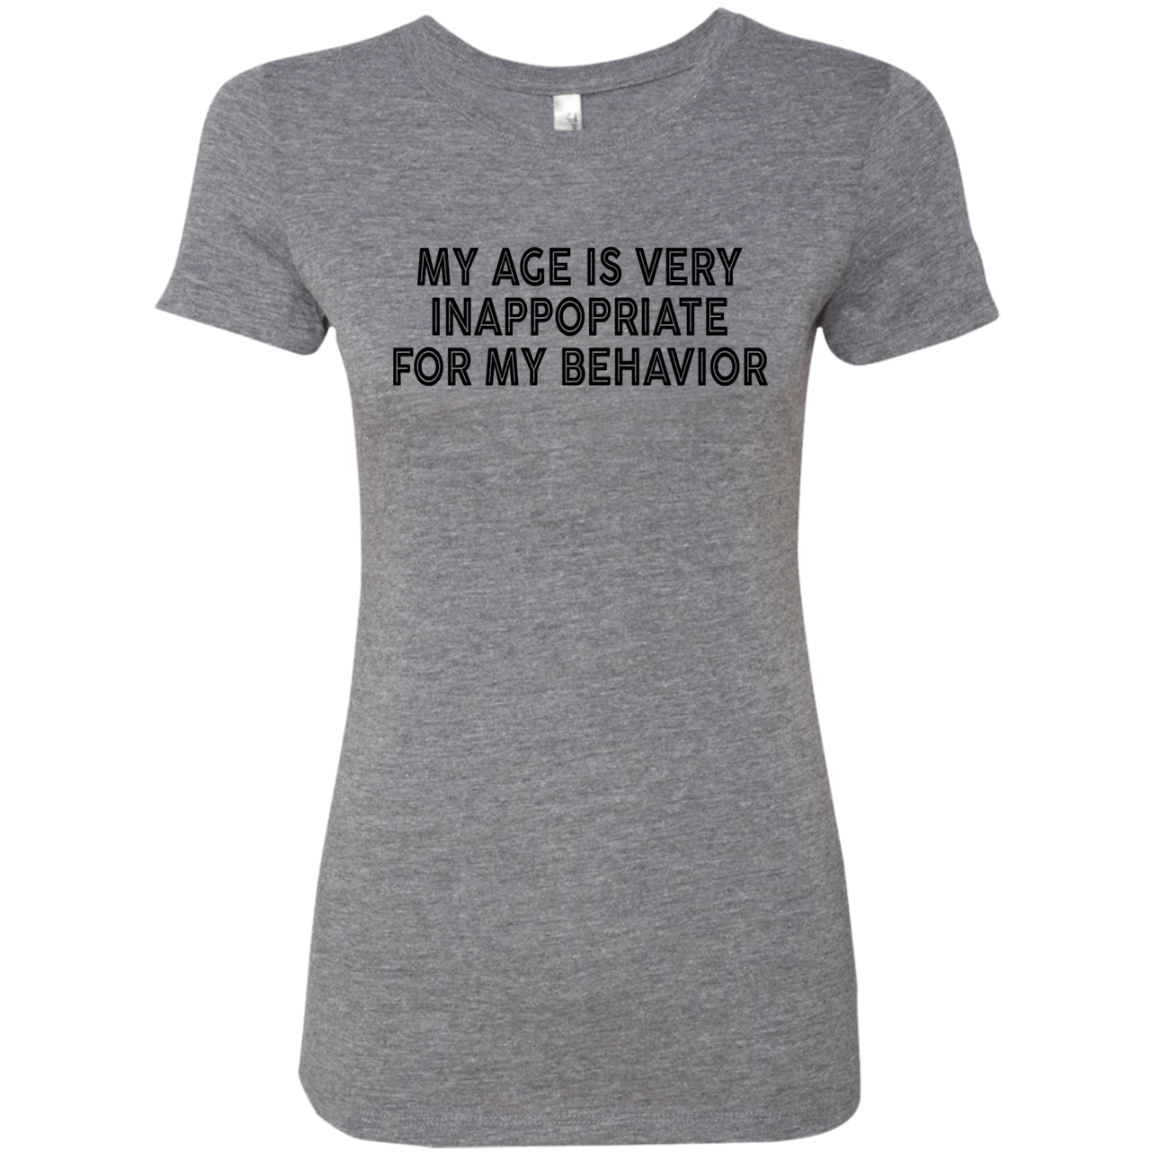 My Age Is Very Inappopriate For My Behavior Women's Classic Tee